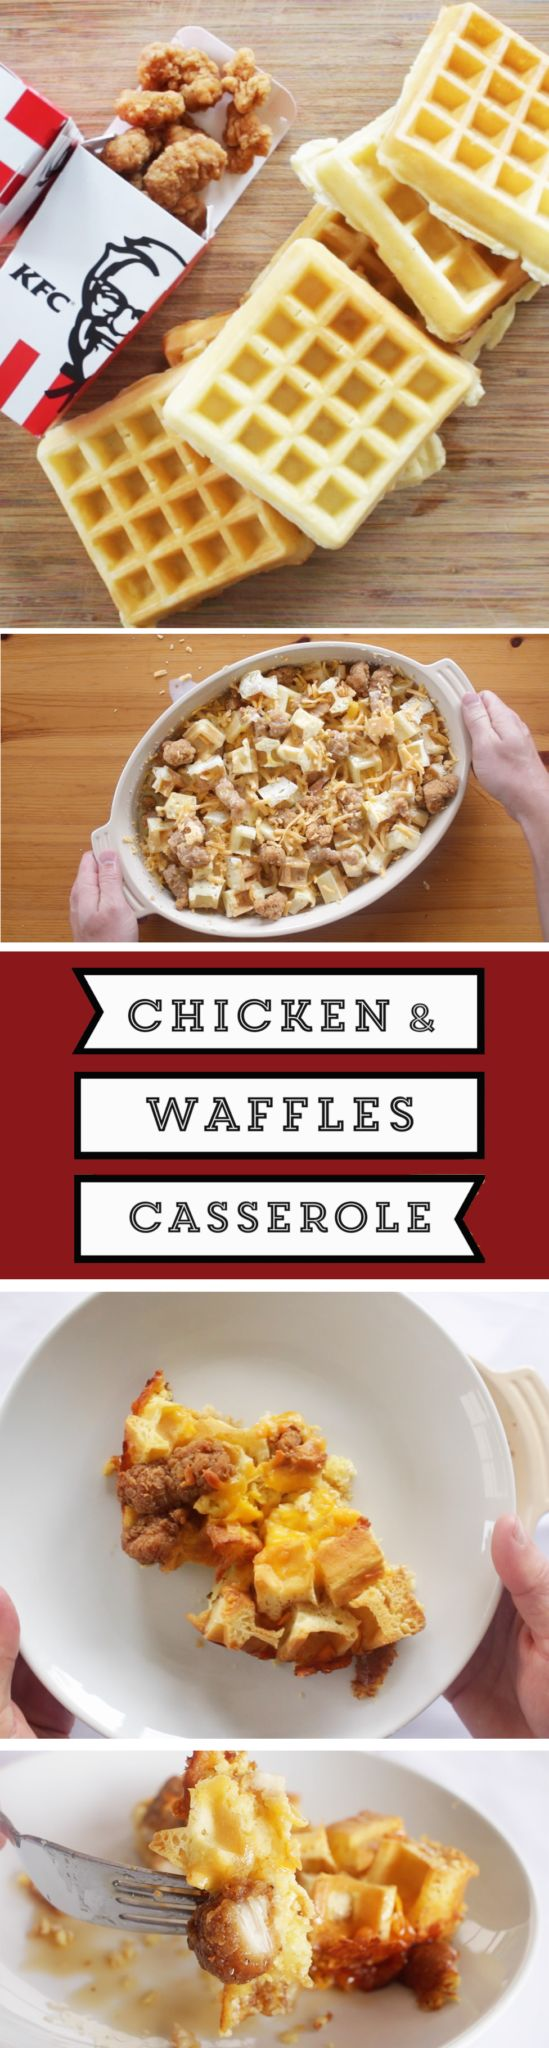 WOW... just wow! If you haven't tried it... don't SLAM it... It's SURPRISINGLY very good!  @kfccolonel Chicken & Waffle Casserole --->